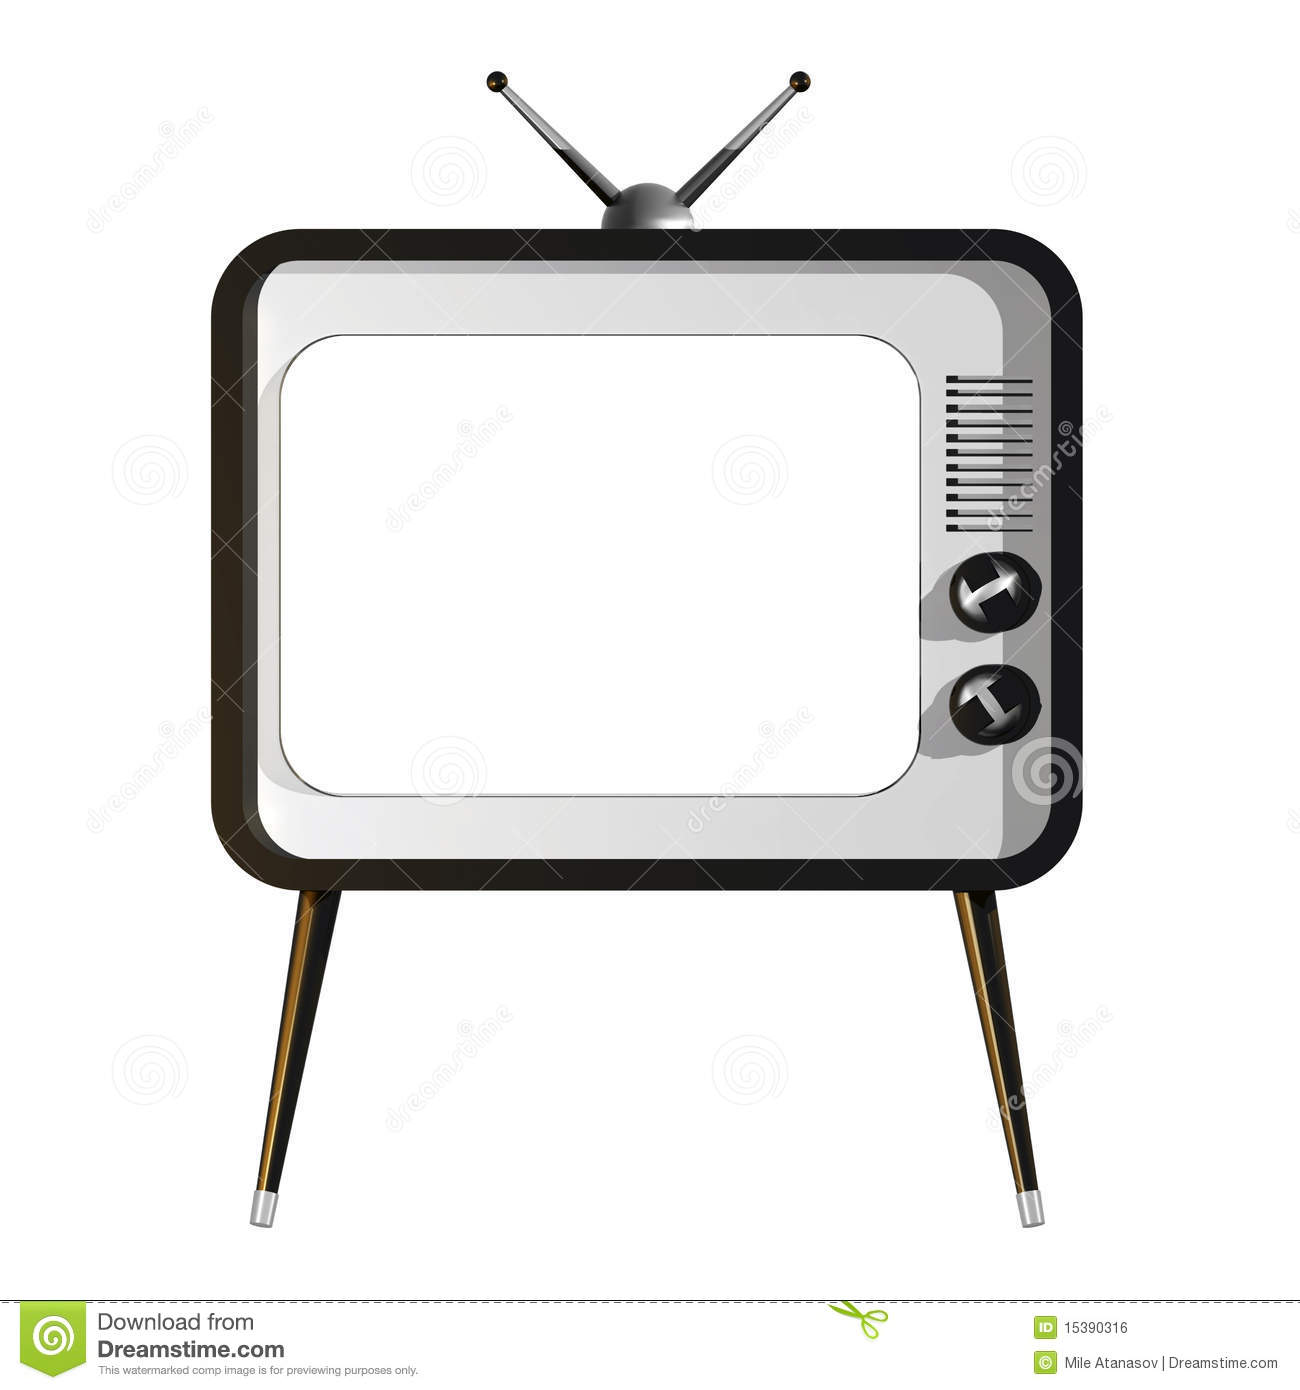 Tv With Empty Screen Royalty Free Stock Image   Image  15390316